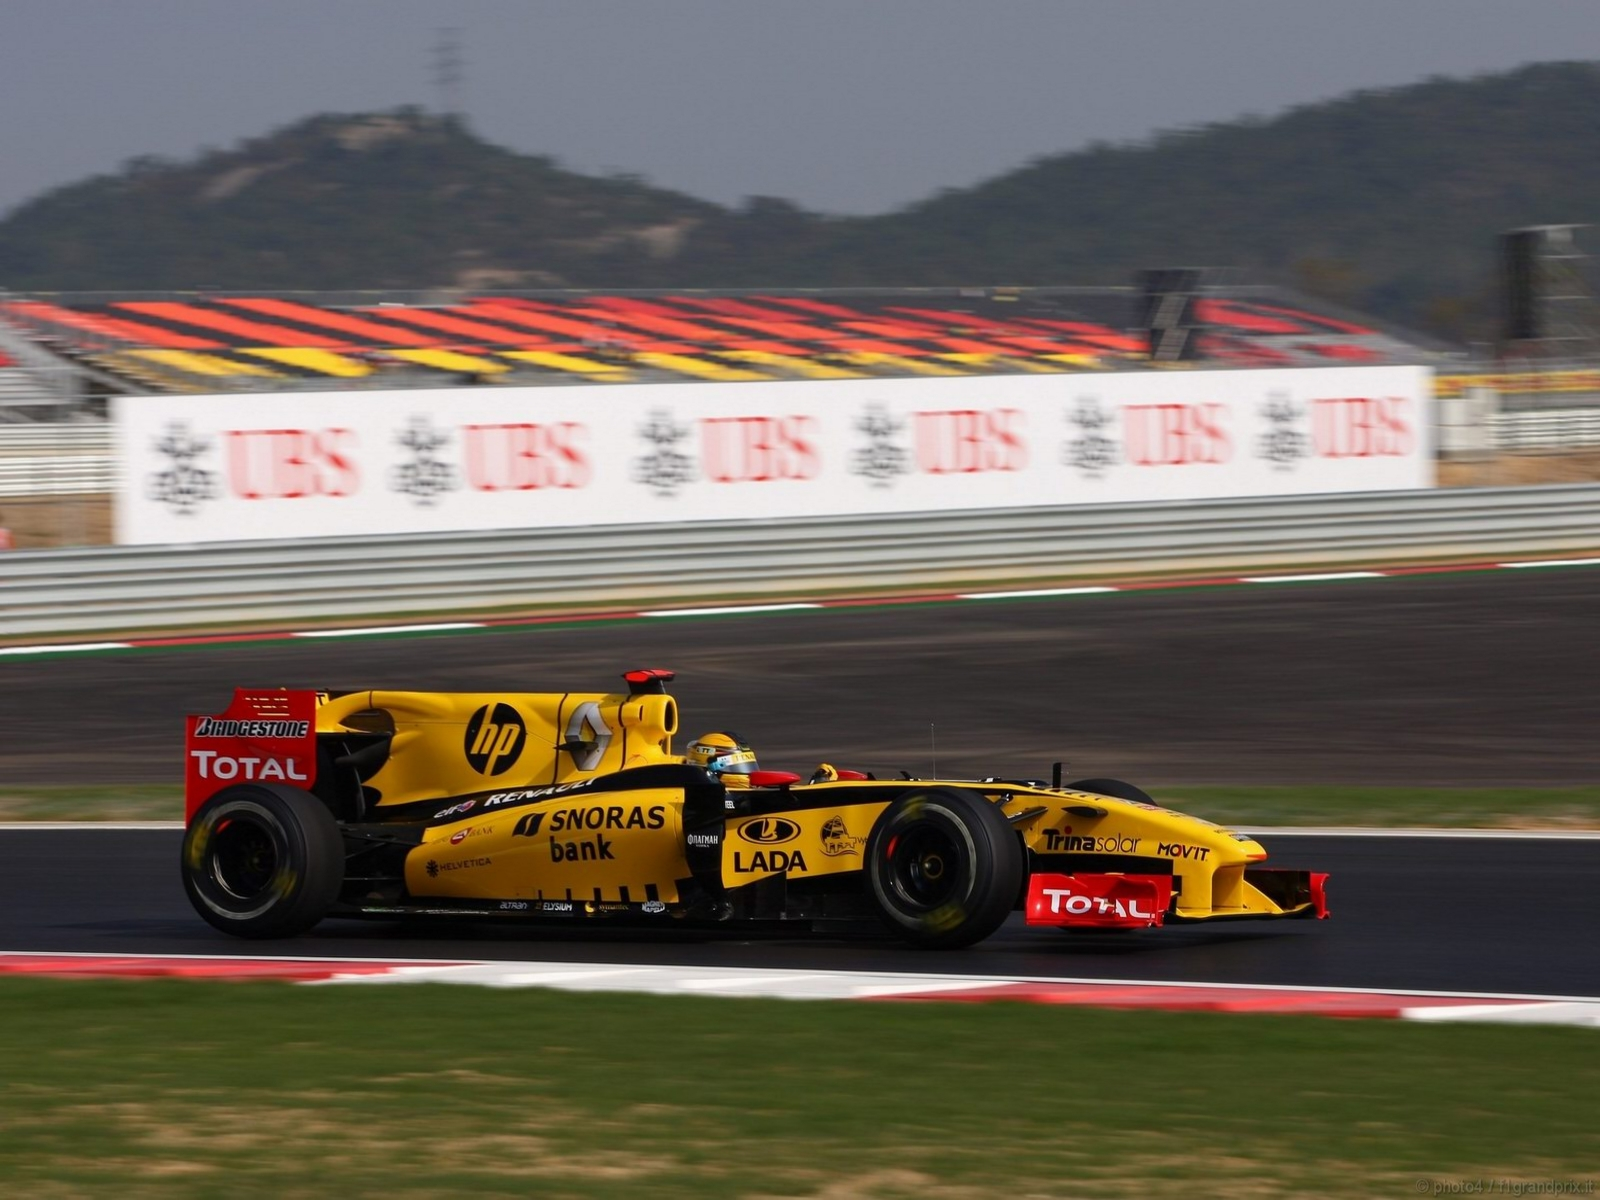 pojazdy - formula1 - gp_corea_wallpapers_000017